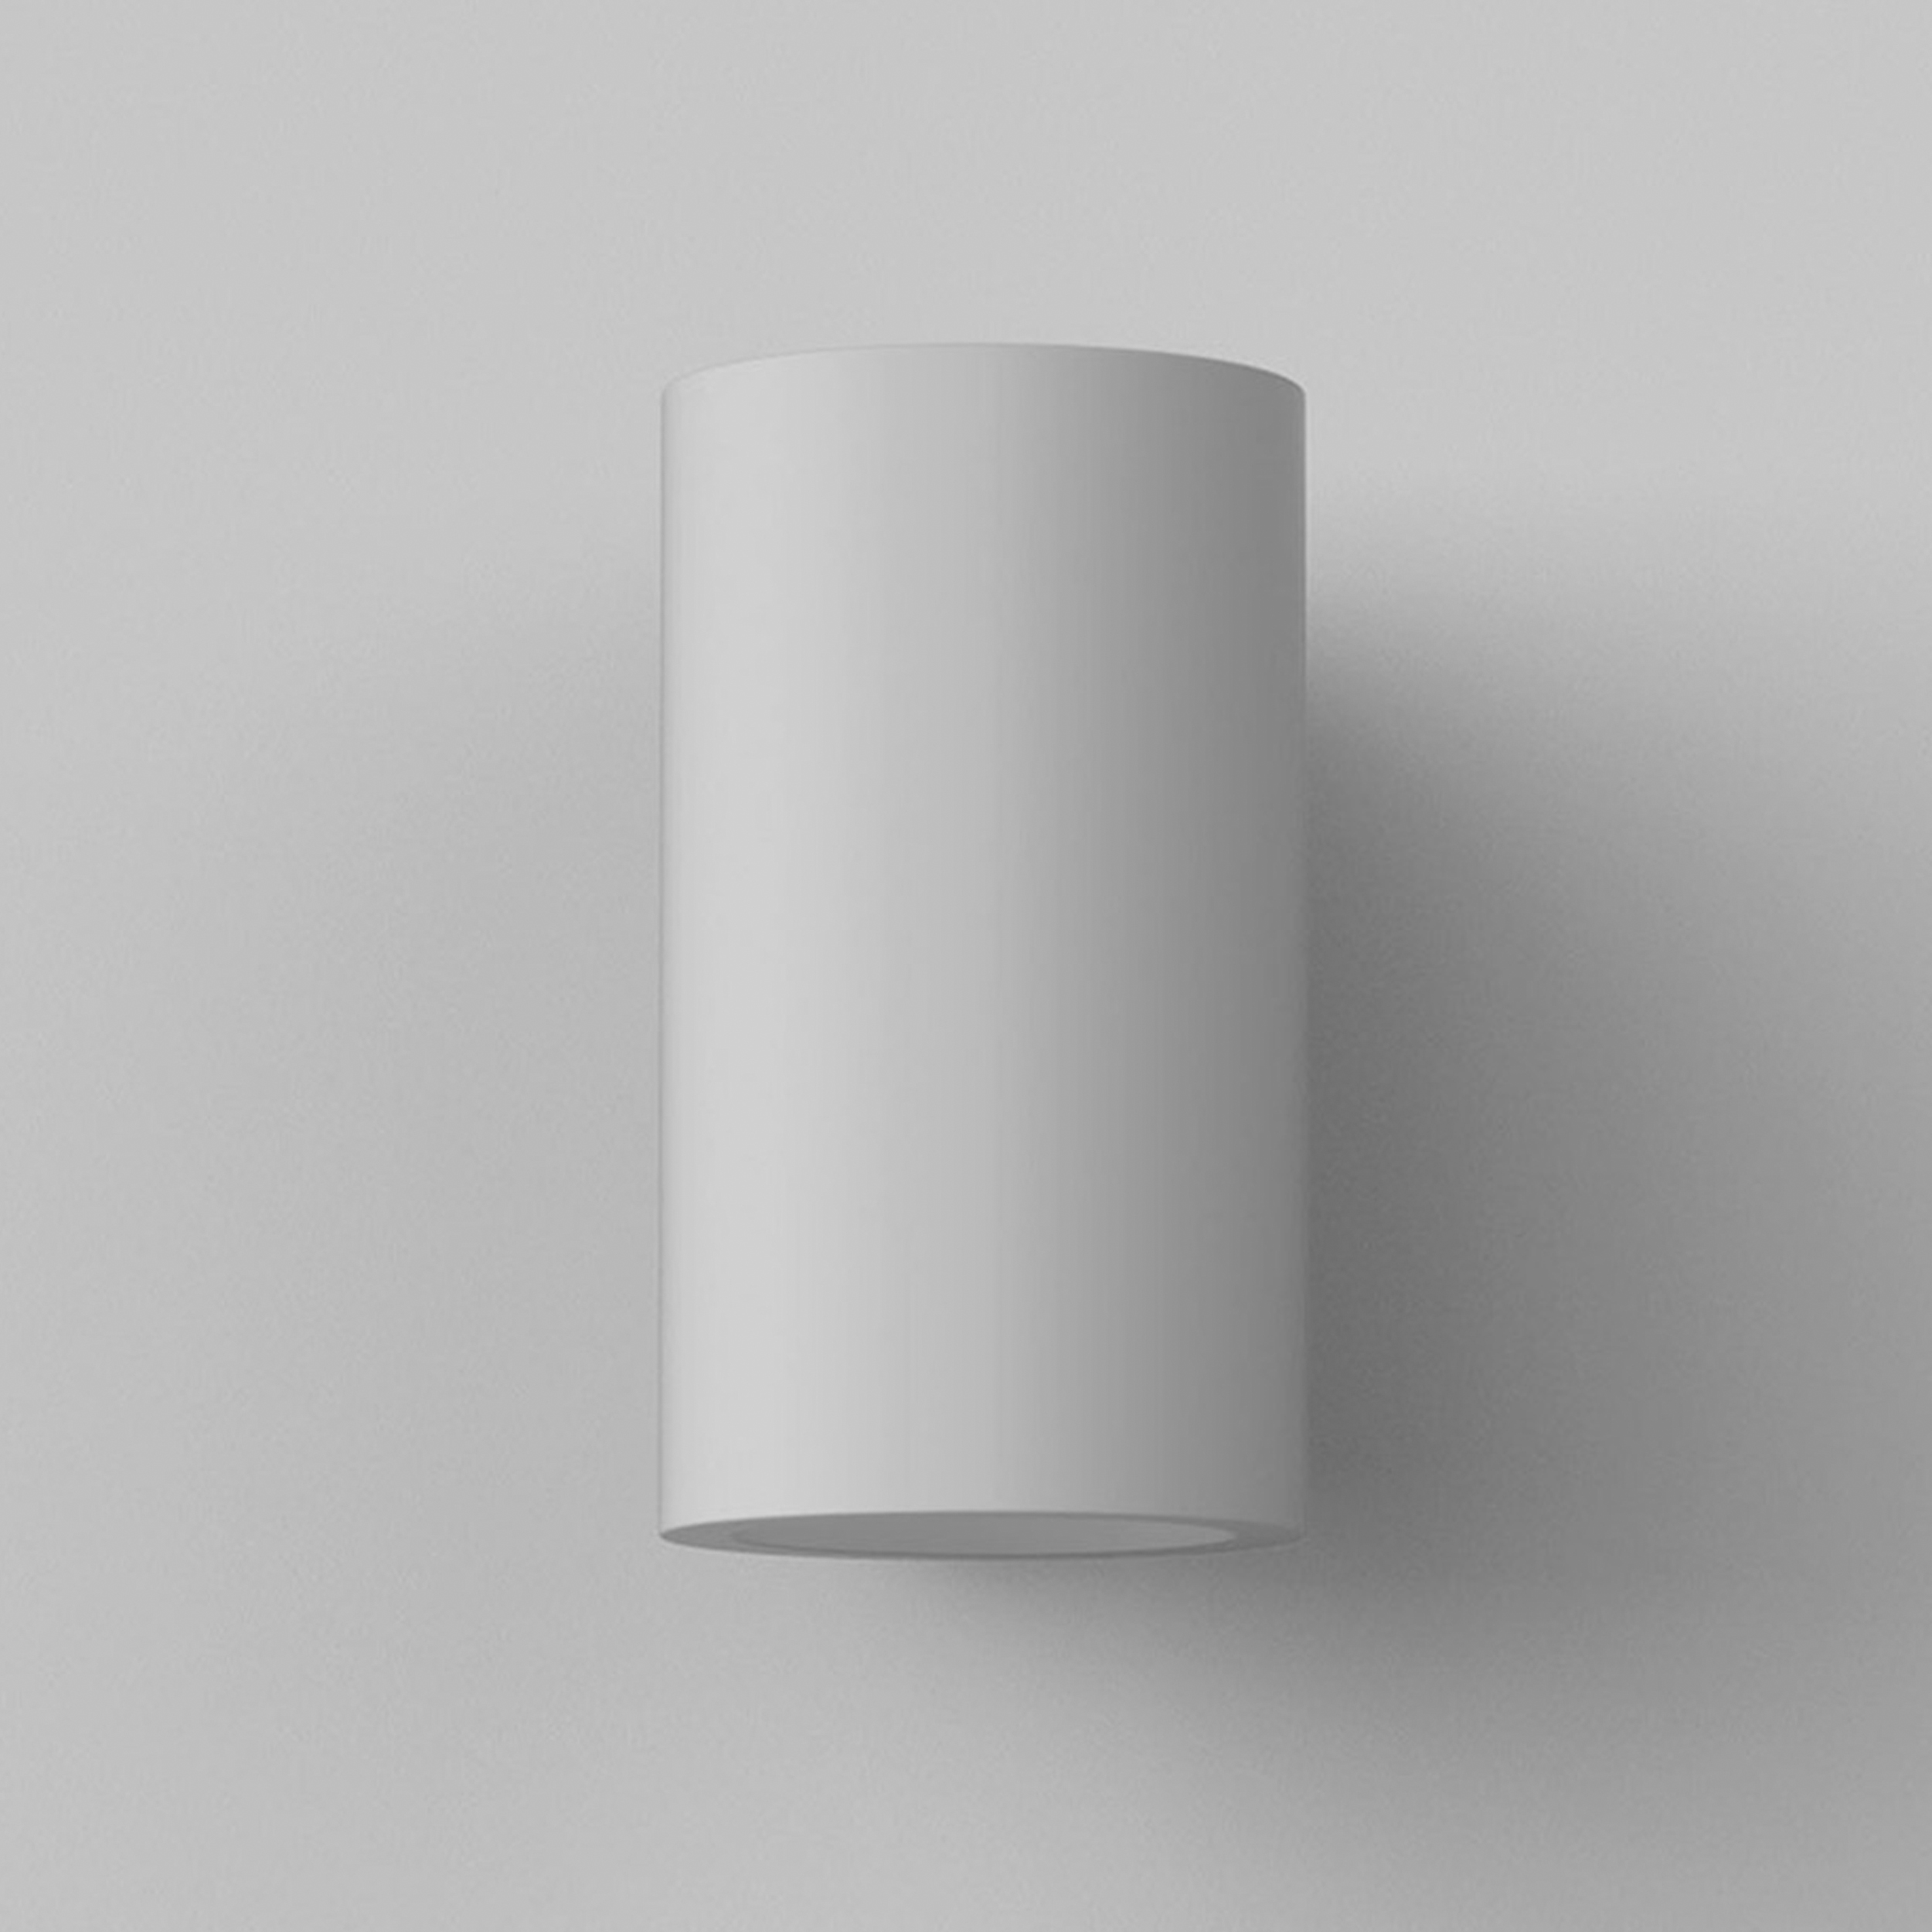 Astro Bologna 160 Led Wall Light White Plaster E